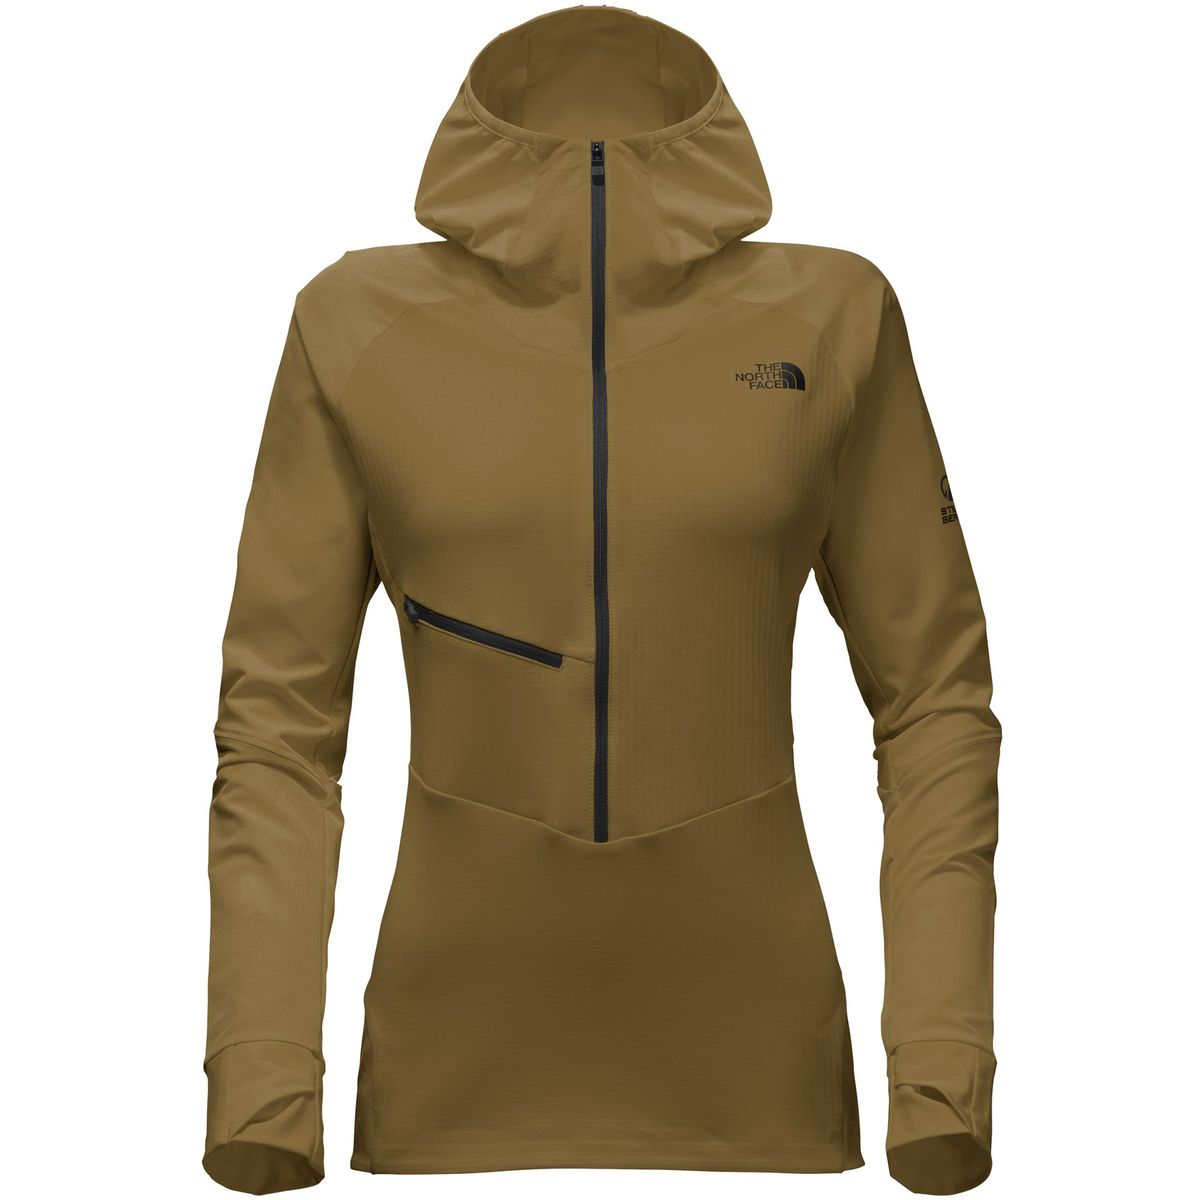 The North Face Respirator Fleece Women's Jacket (Military Olive)